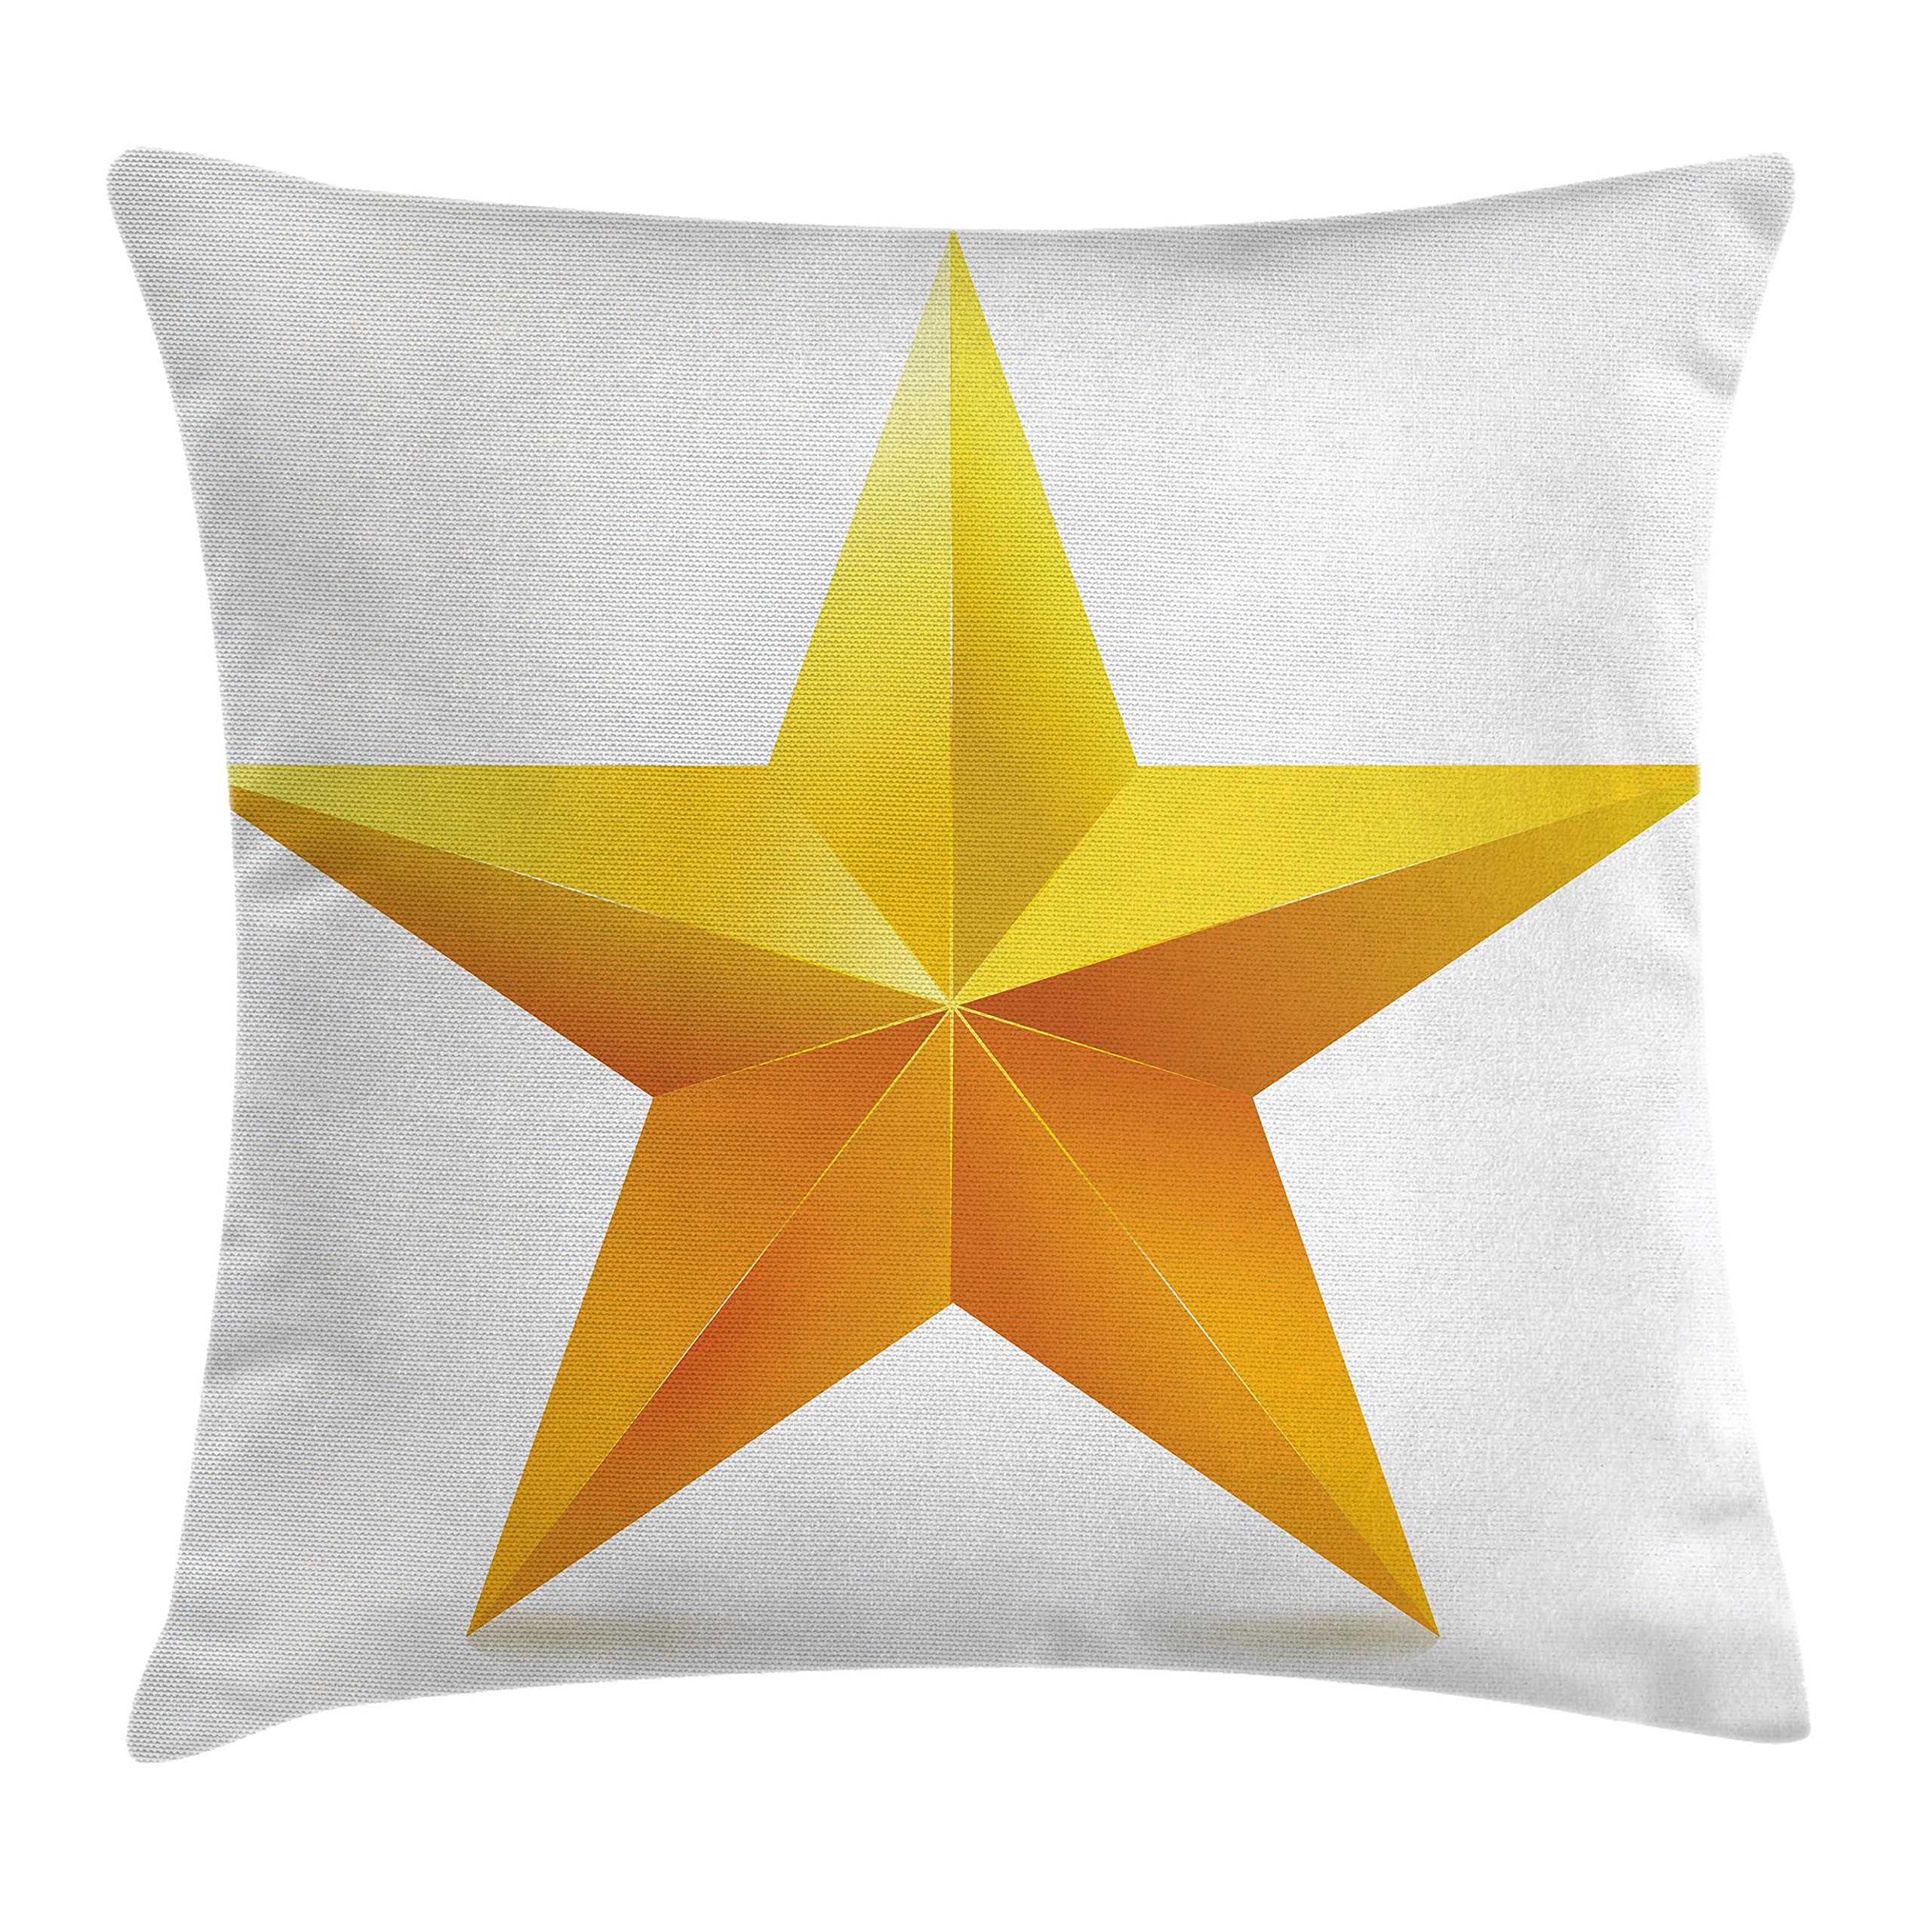 Ambesonne Yellow Decor Throw Pillow Cushion Cover, Single Golden Star Shining on Plain Background Christmas Celebration Art, Decorative Square Accent Pillow Case, 18 X 18 inches, Yellow White